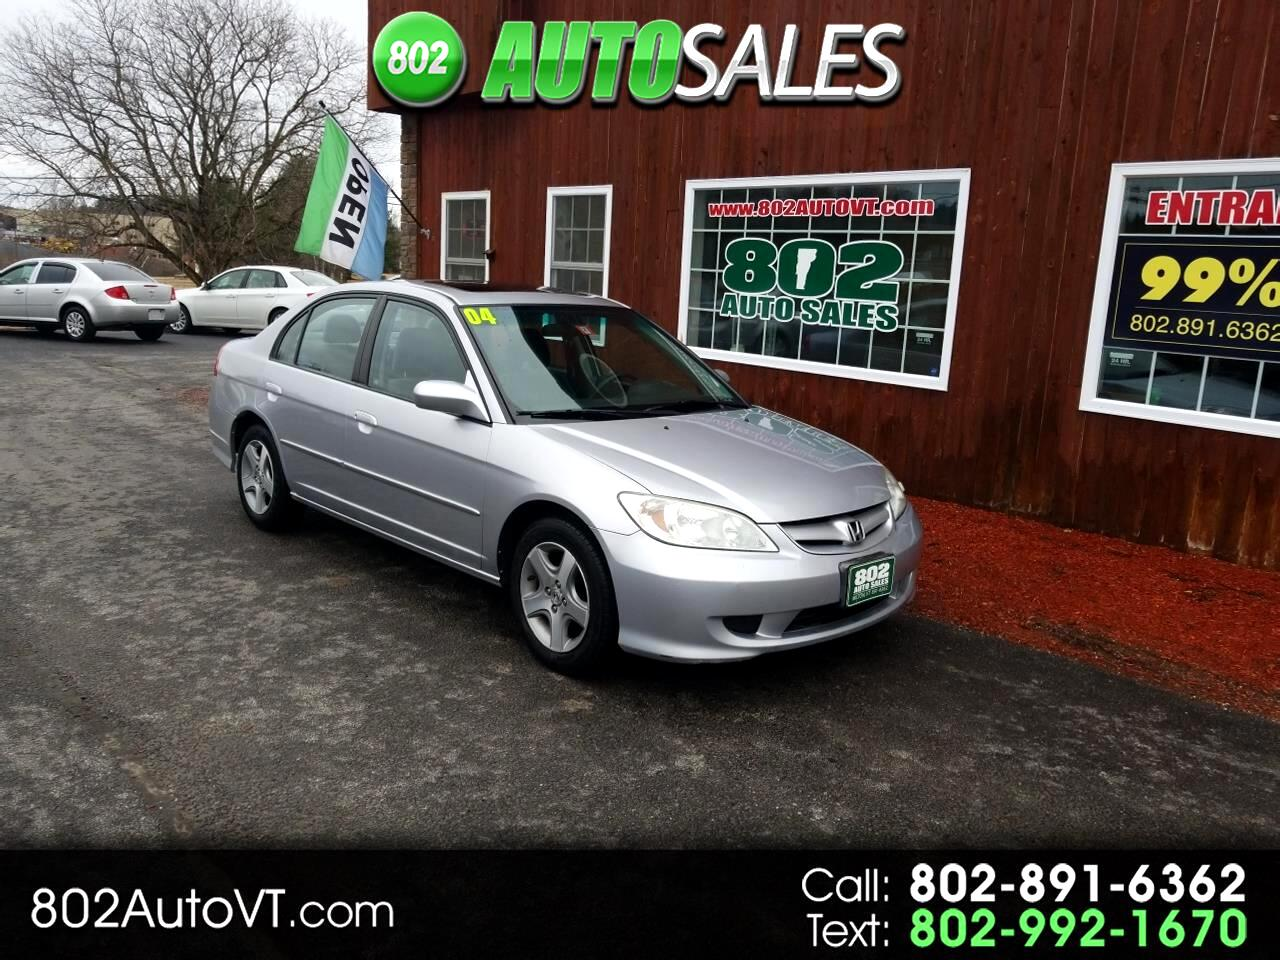 2004 Honda Civic 4dr Sdn EX Manual